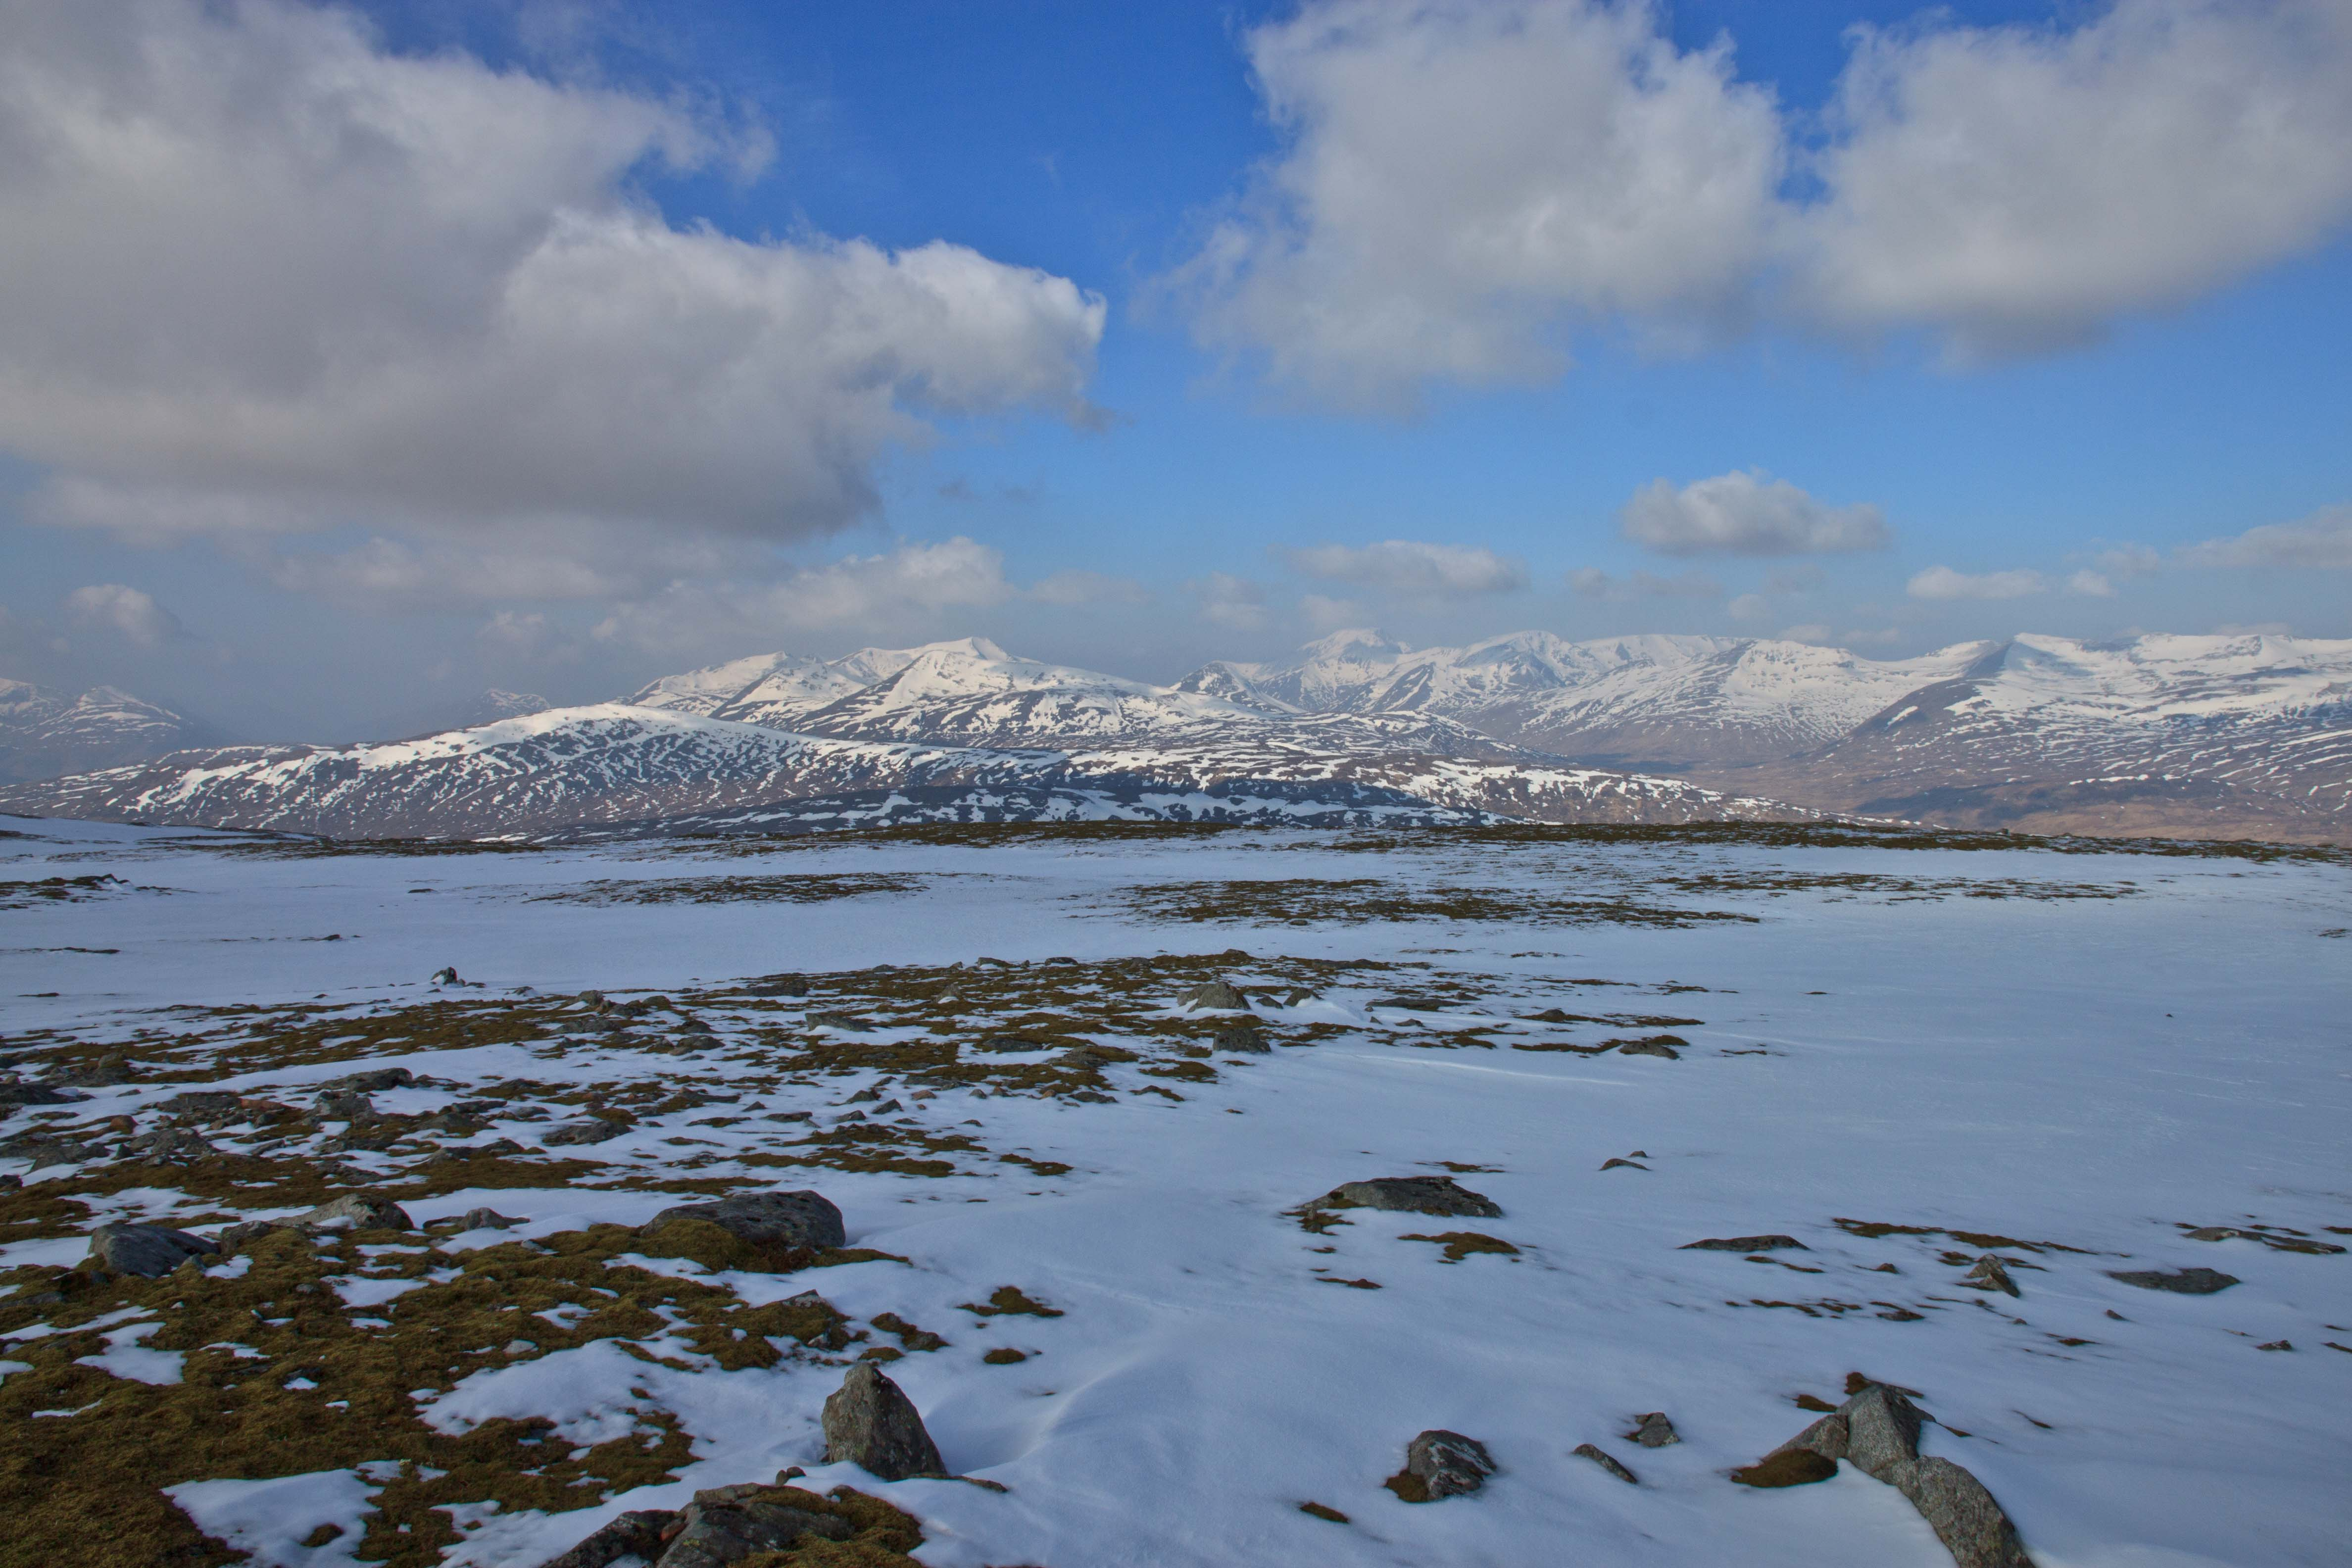 View west from summit Leum Uilleim towards the Mamores, Ben Nevis, Aonoach Mor and the Grey Corries. March 2015.